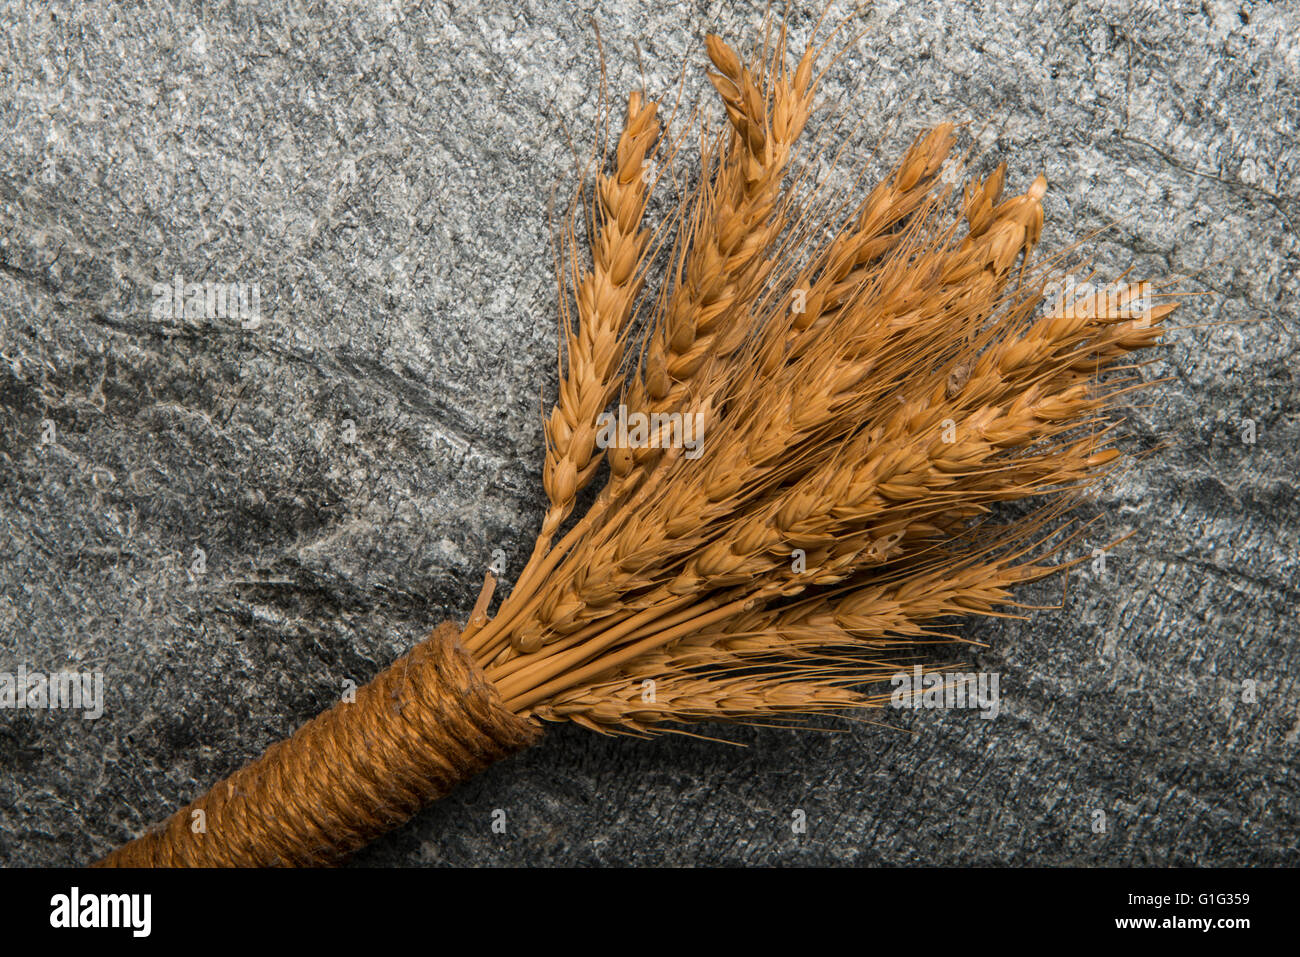 Dried wheat and straw on stone background - Stock Image